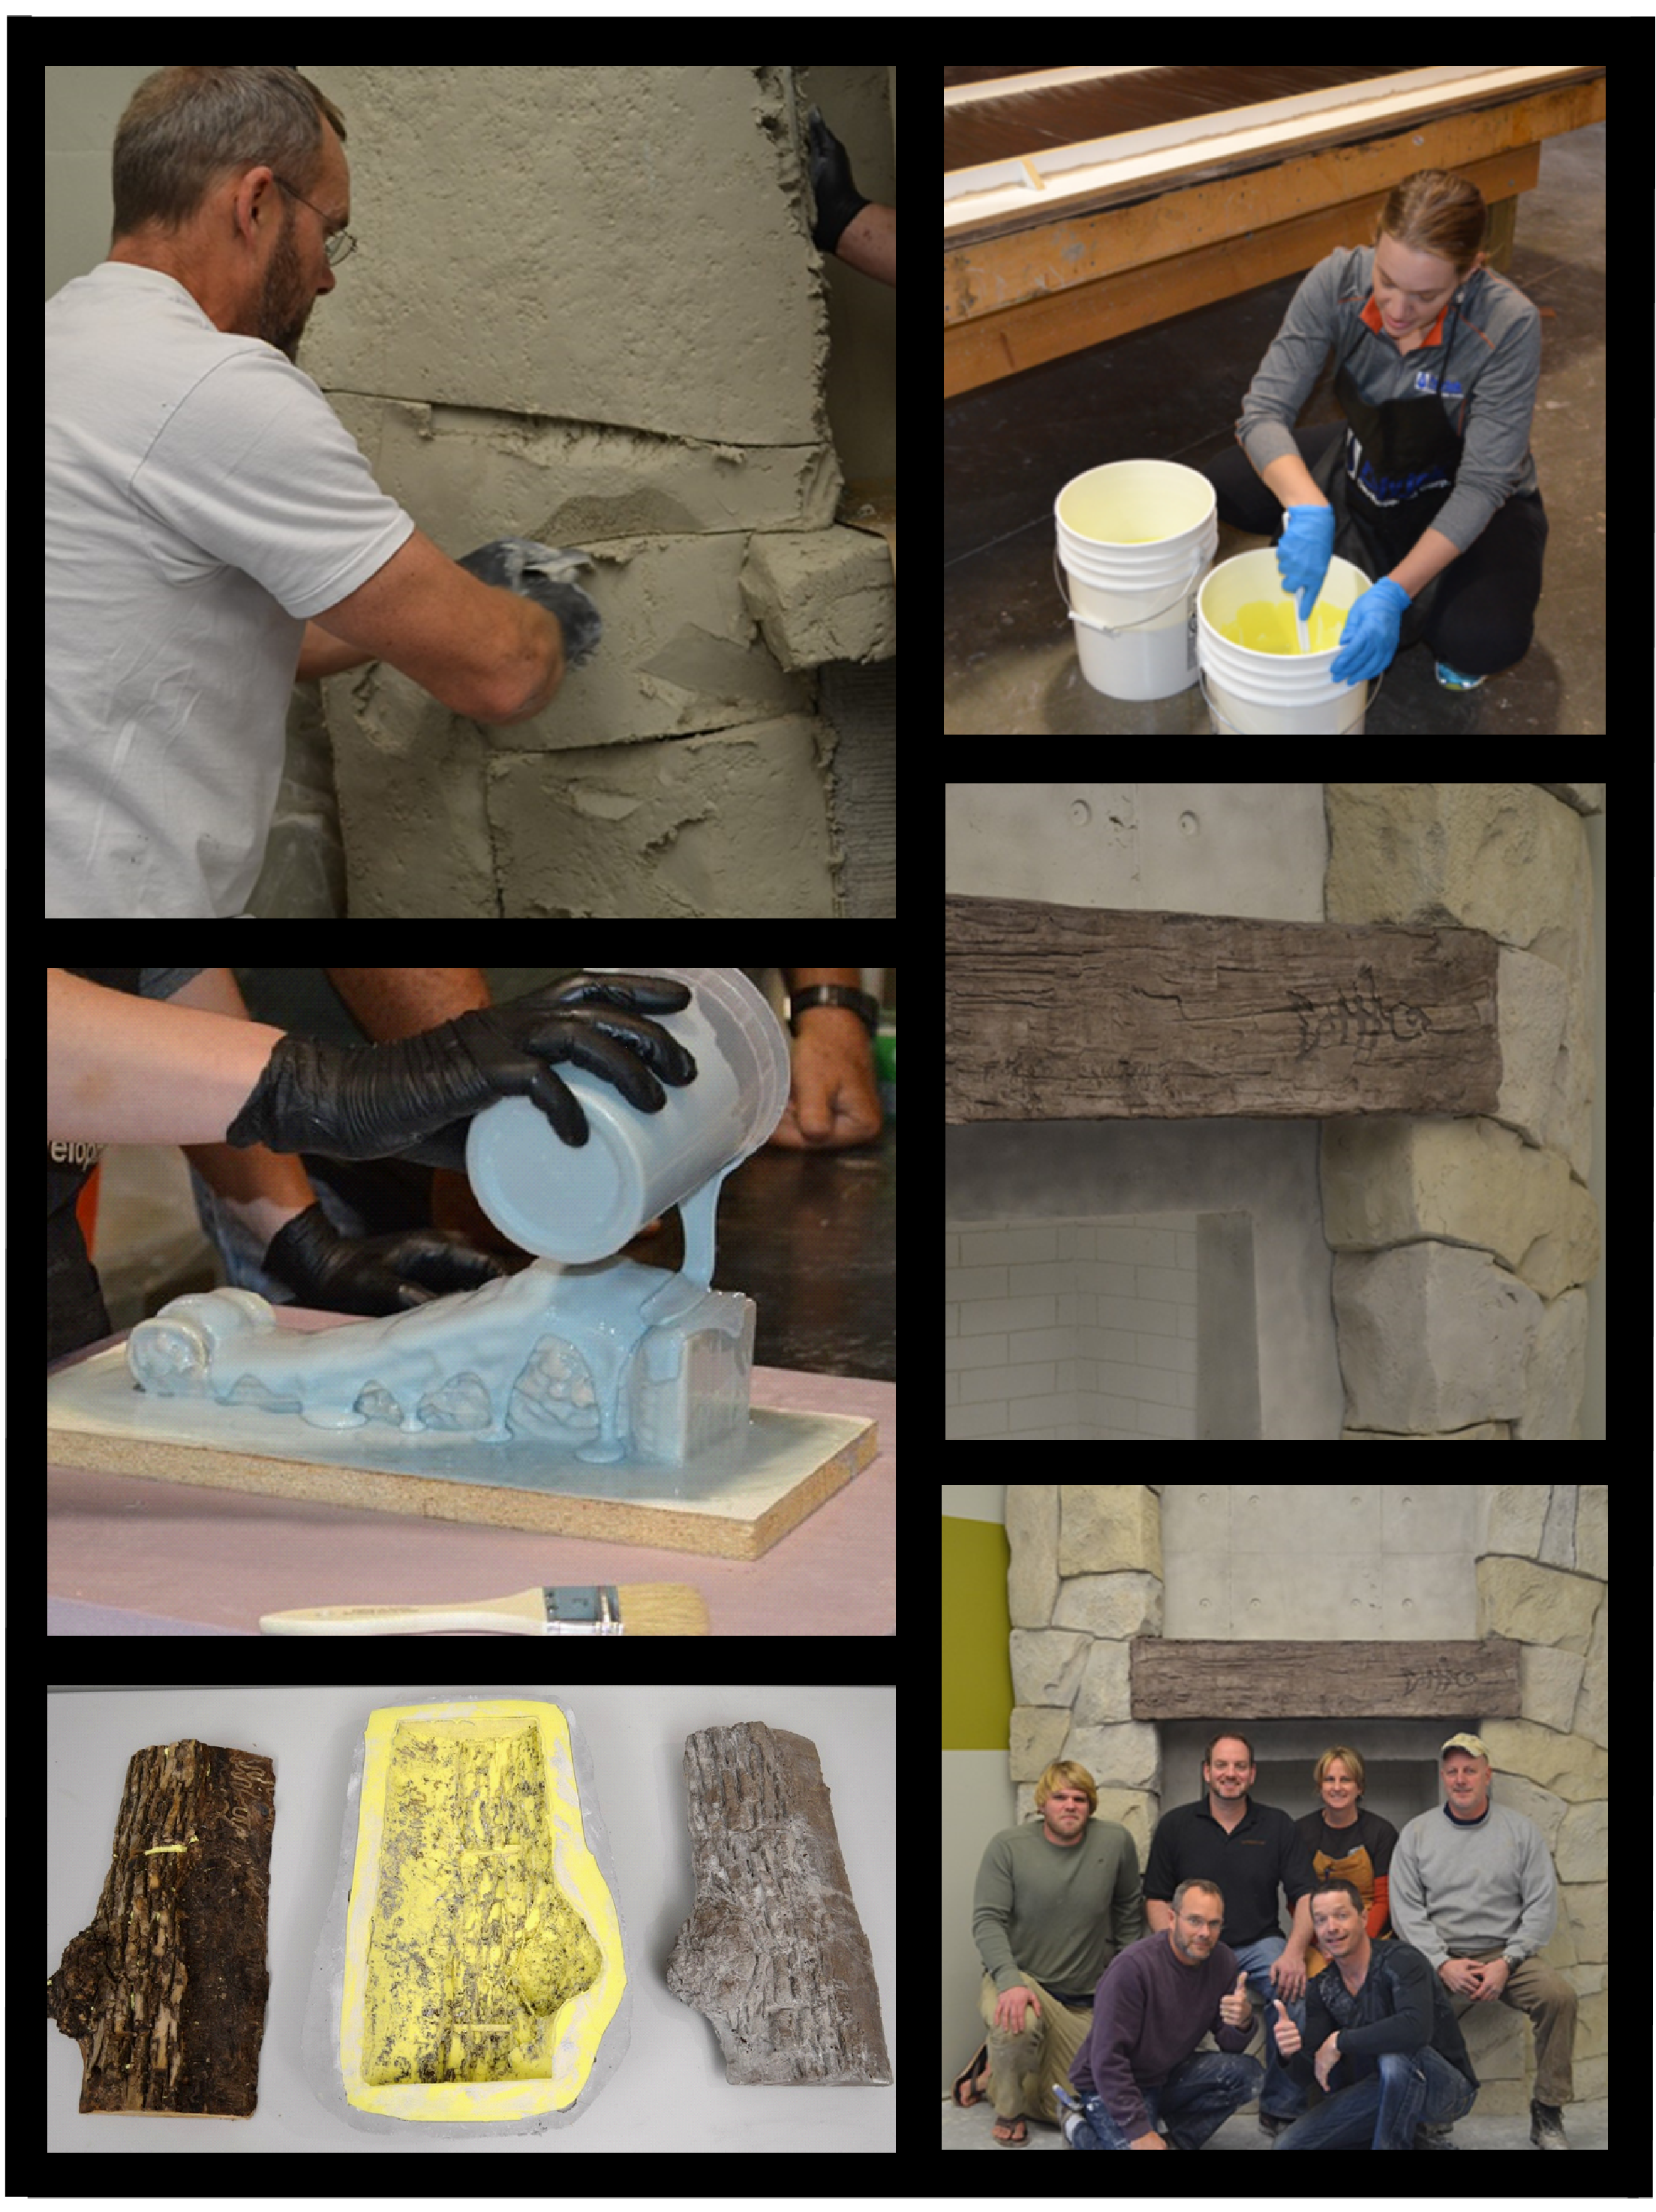 4 Day Workshop, How to make and use rubber molds & stamps with vertical carving & texturing concrete